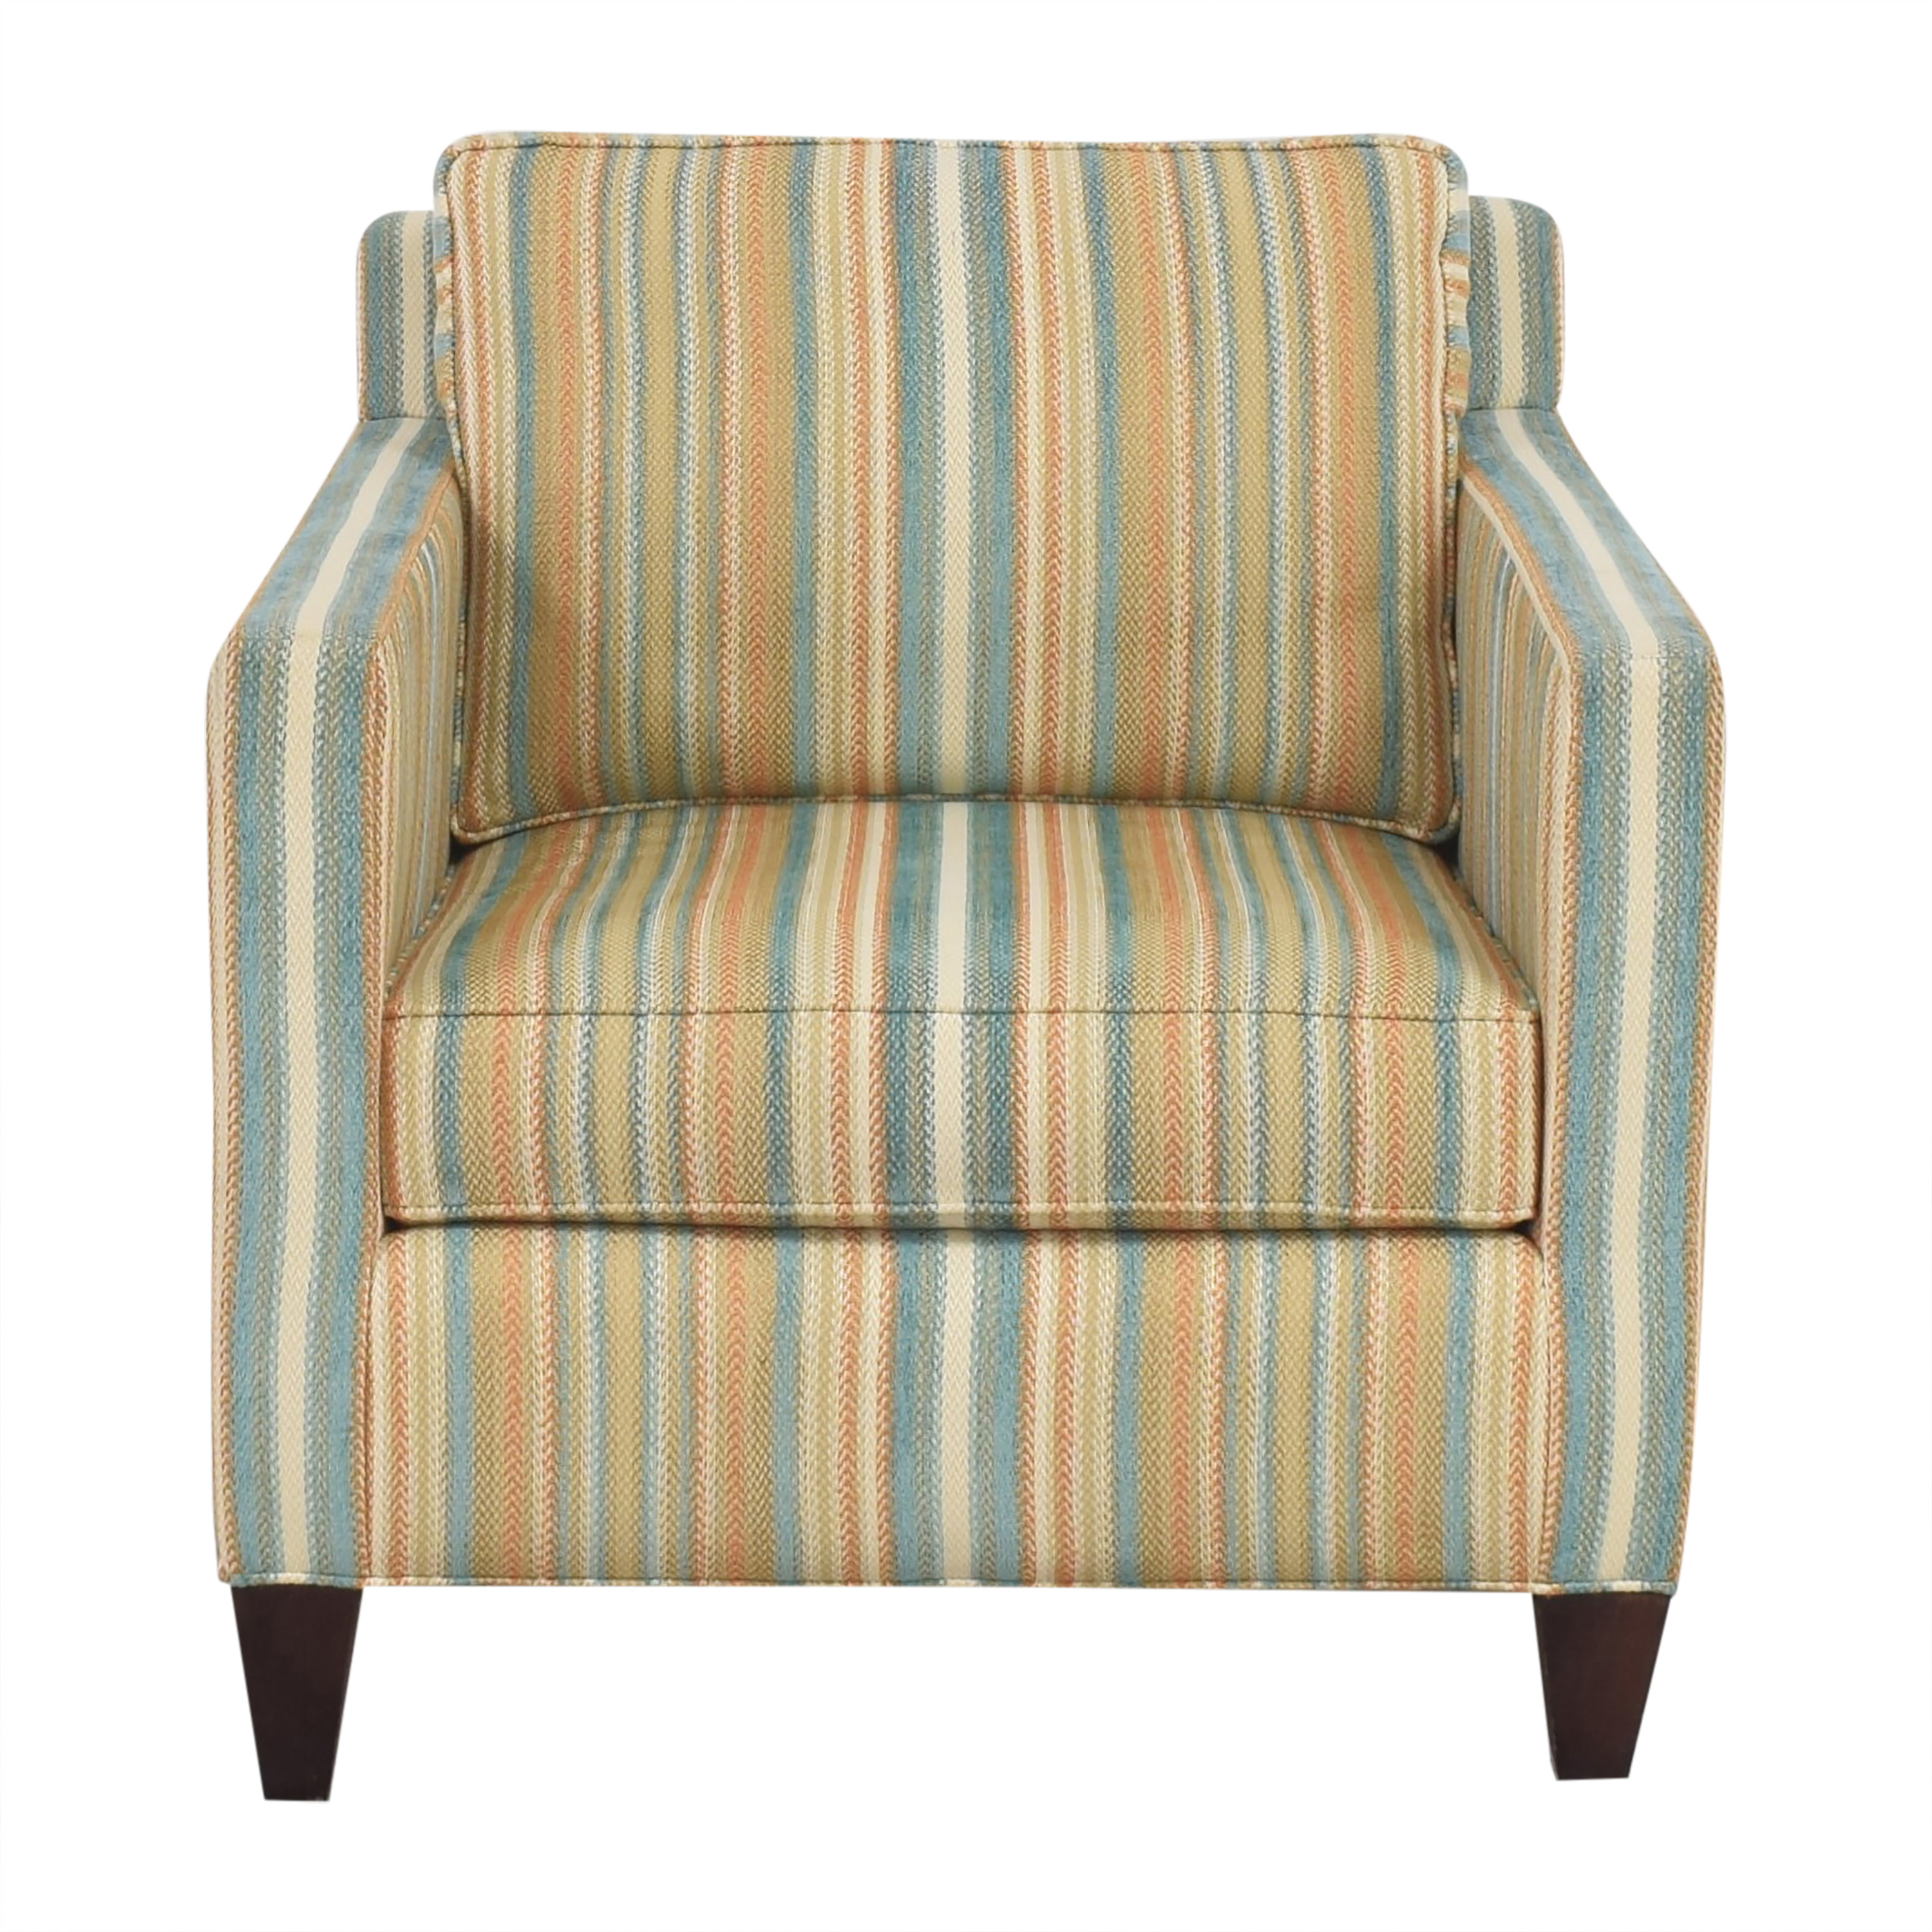 Thomasville Thomasville Striped Accent Chair multi